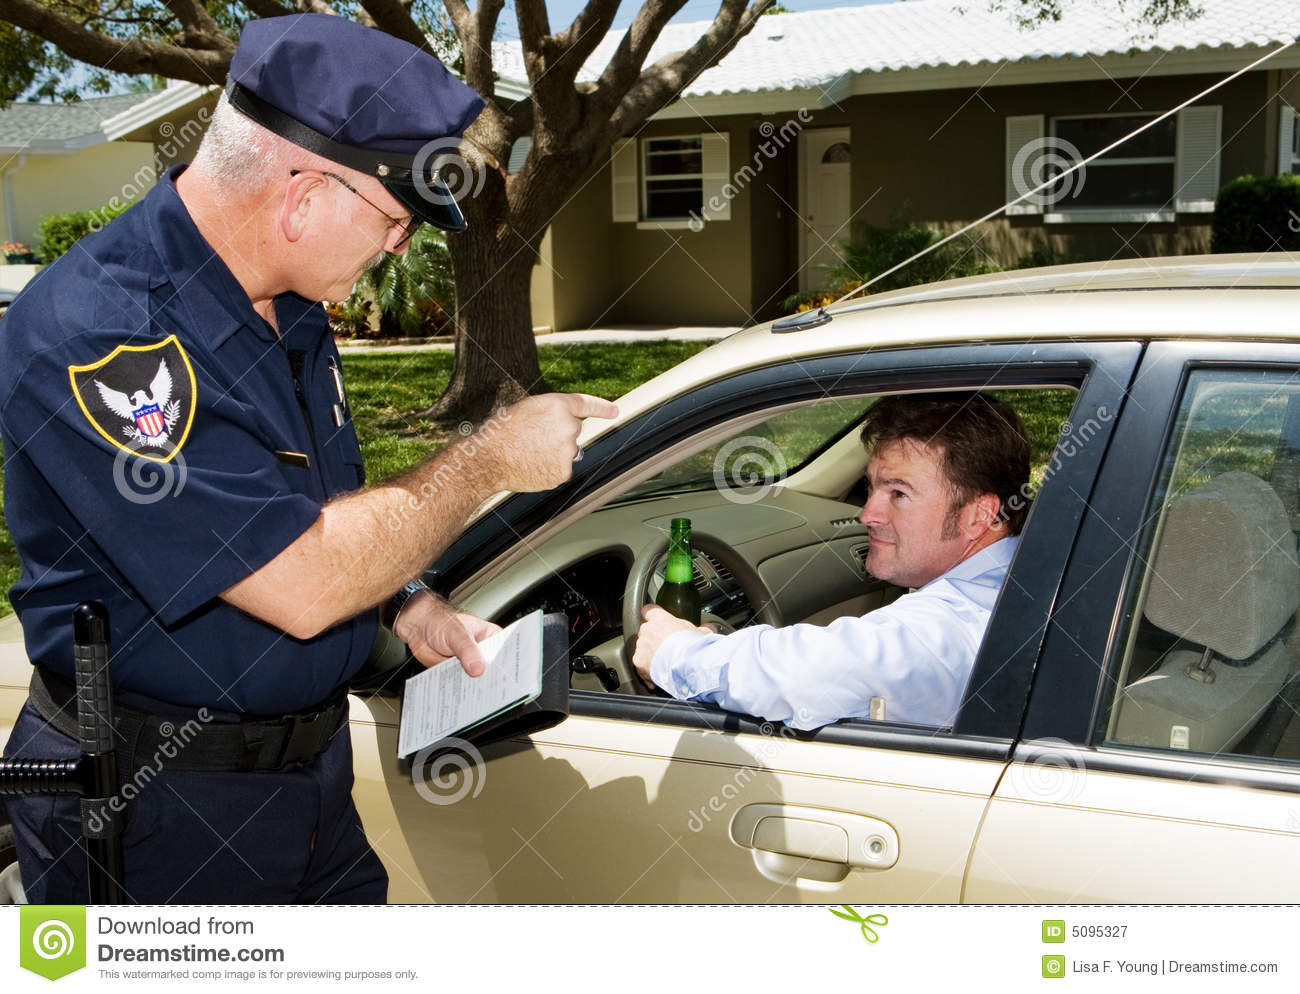 Police - Drunk Driving Royalty Free Stock Photography - Image: 5095327